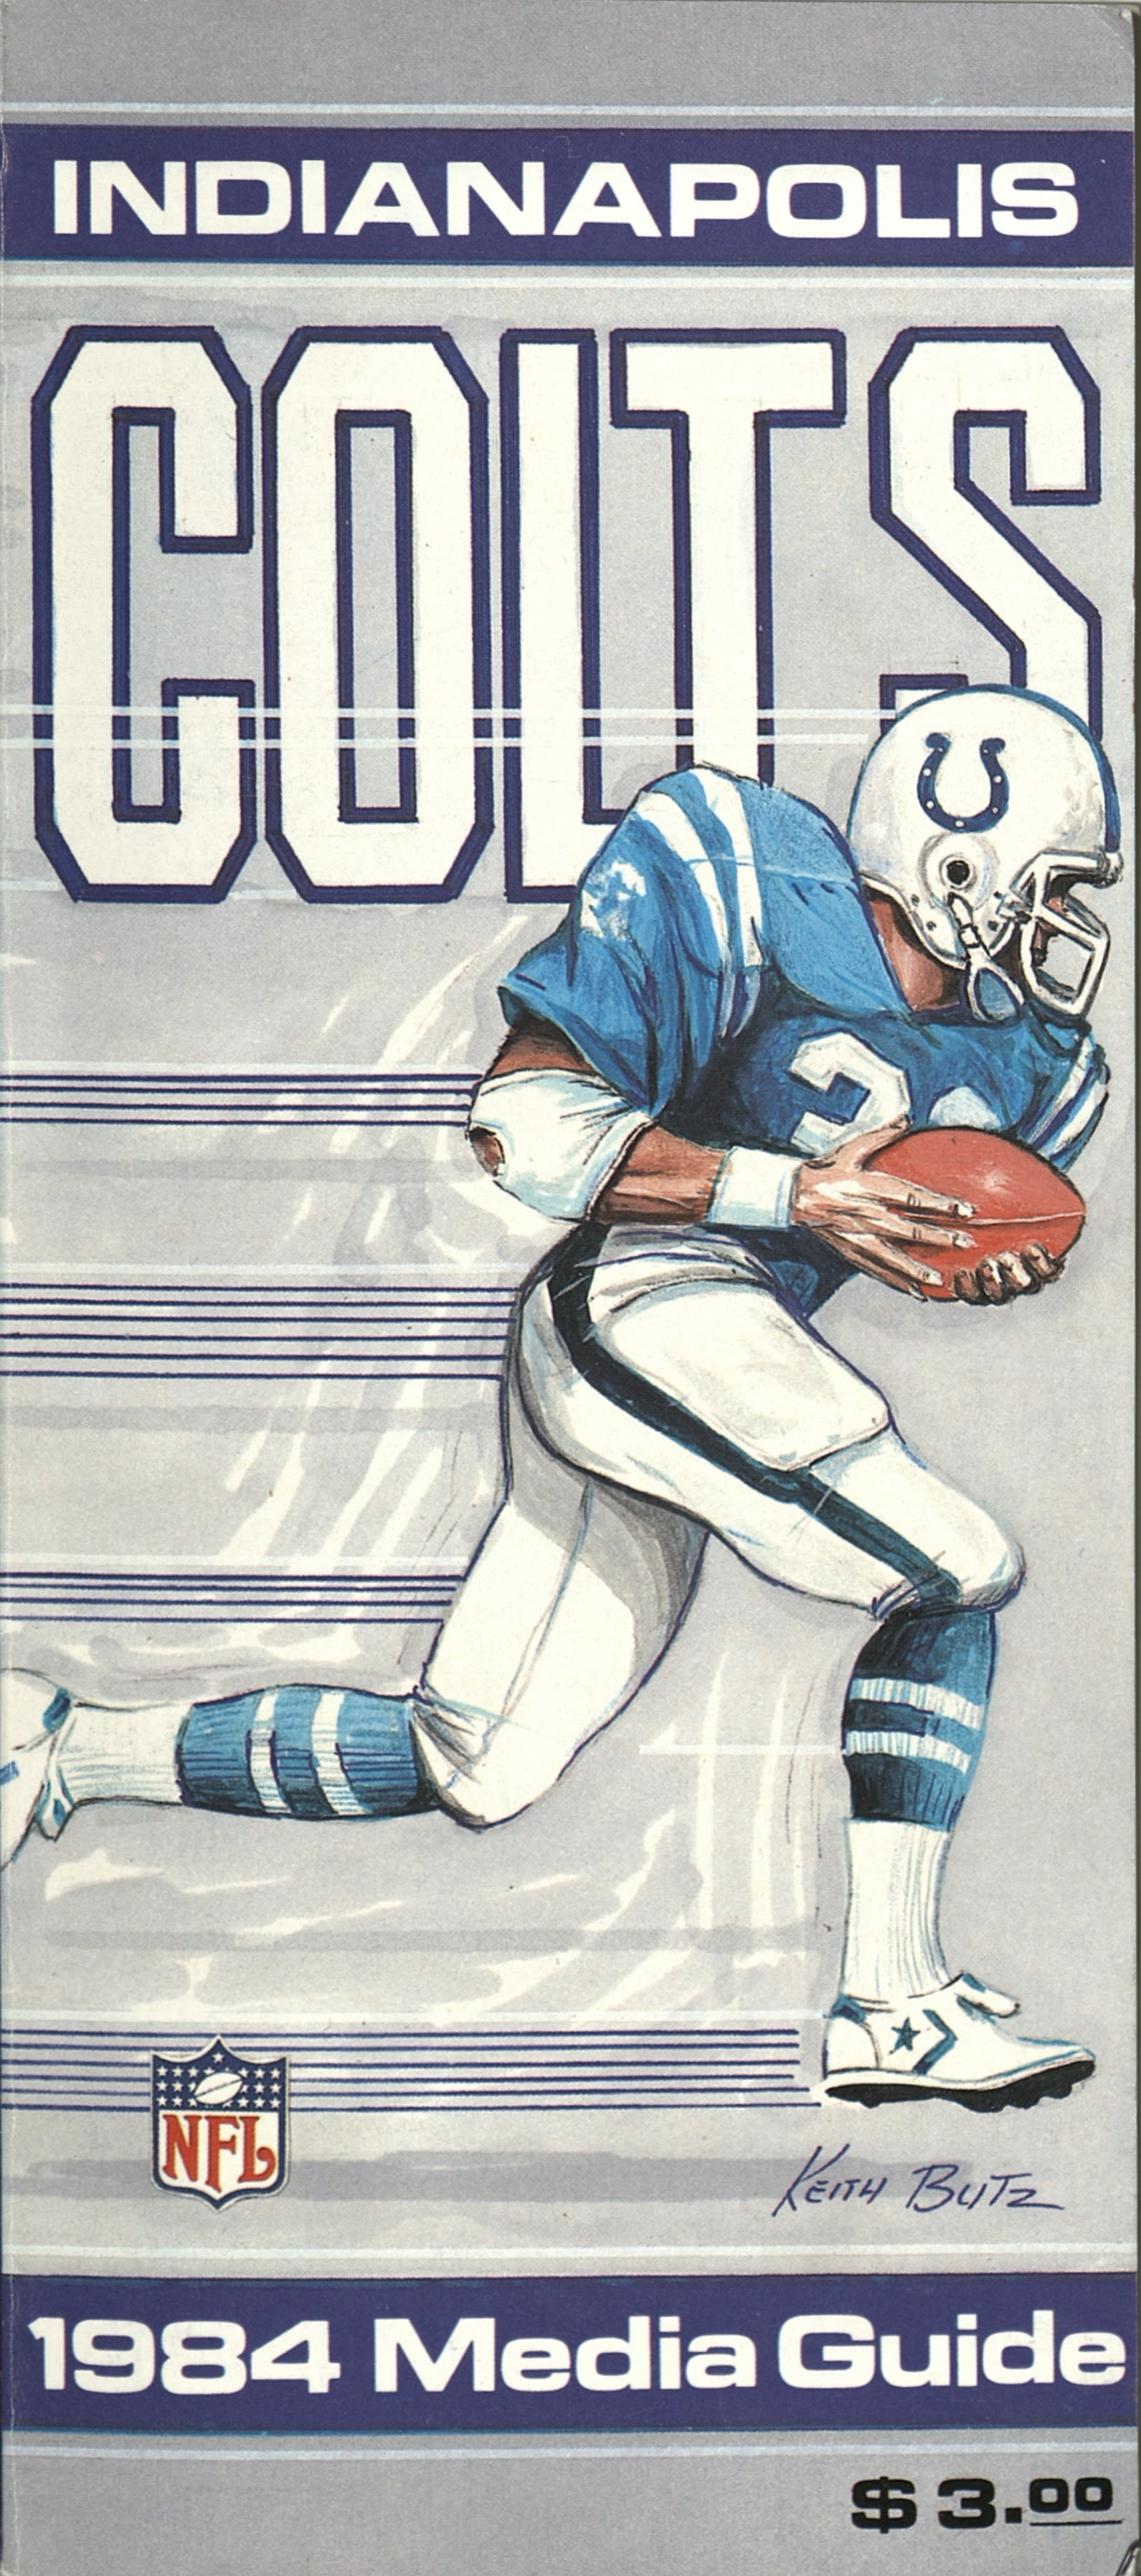 COLTS_1984_Cover